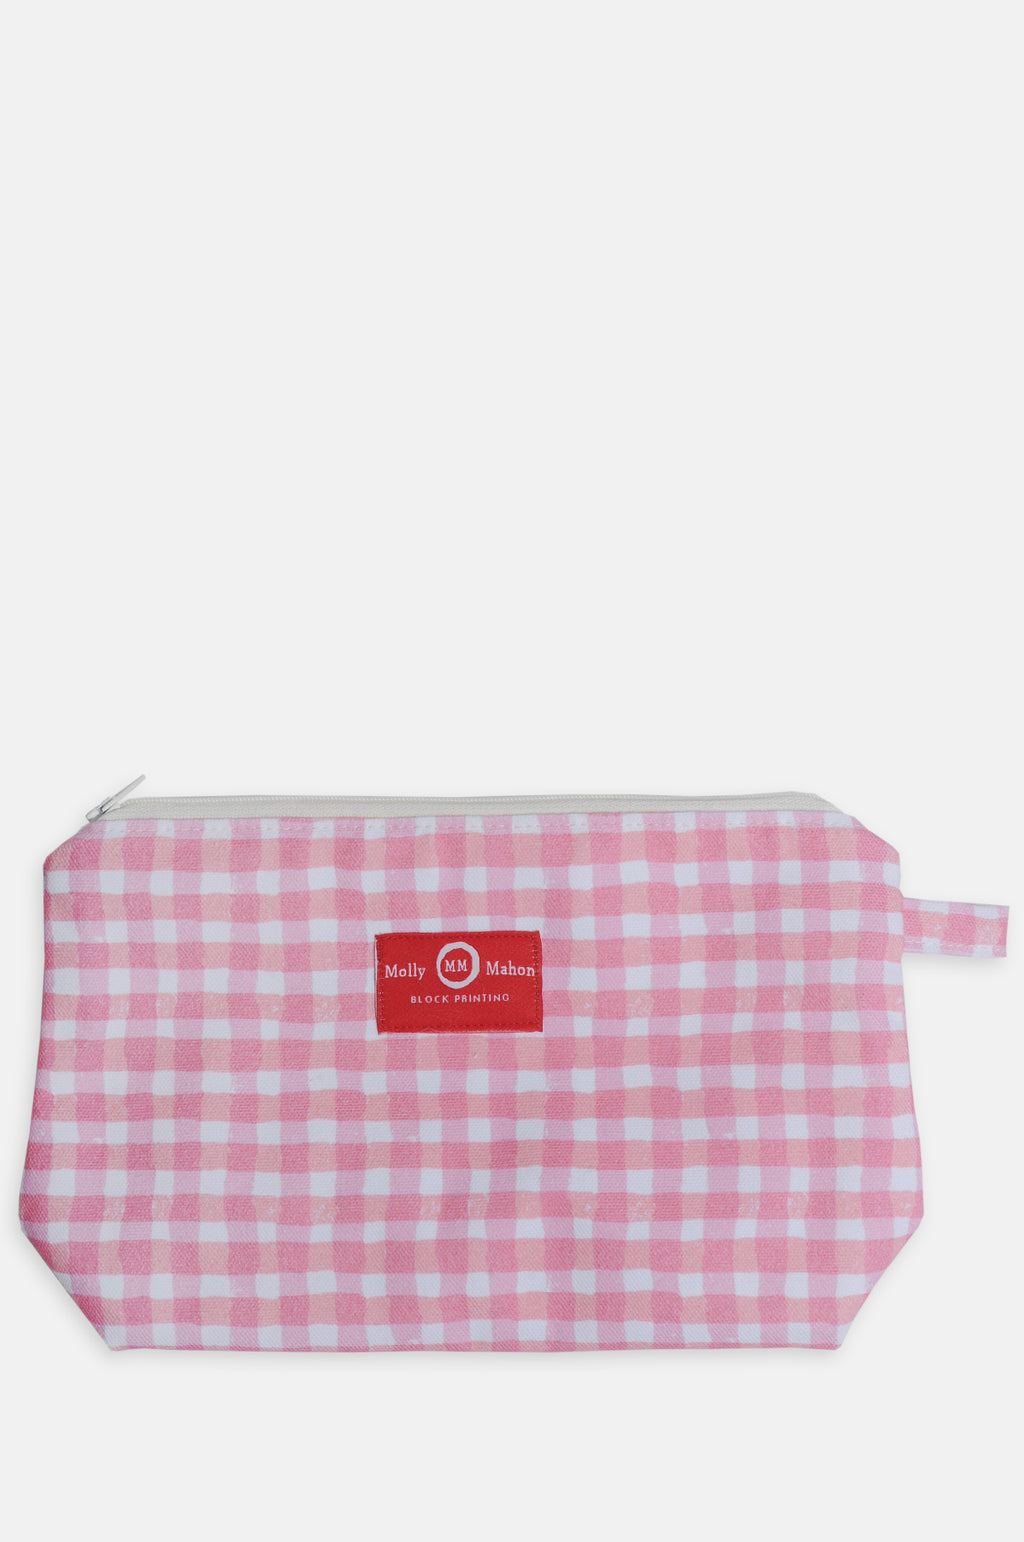 Medium Washbag in Pink Gingham